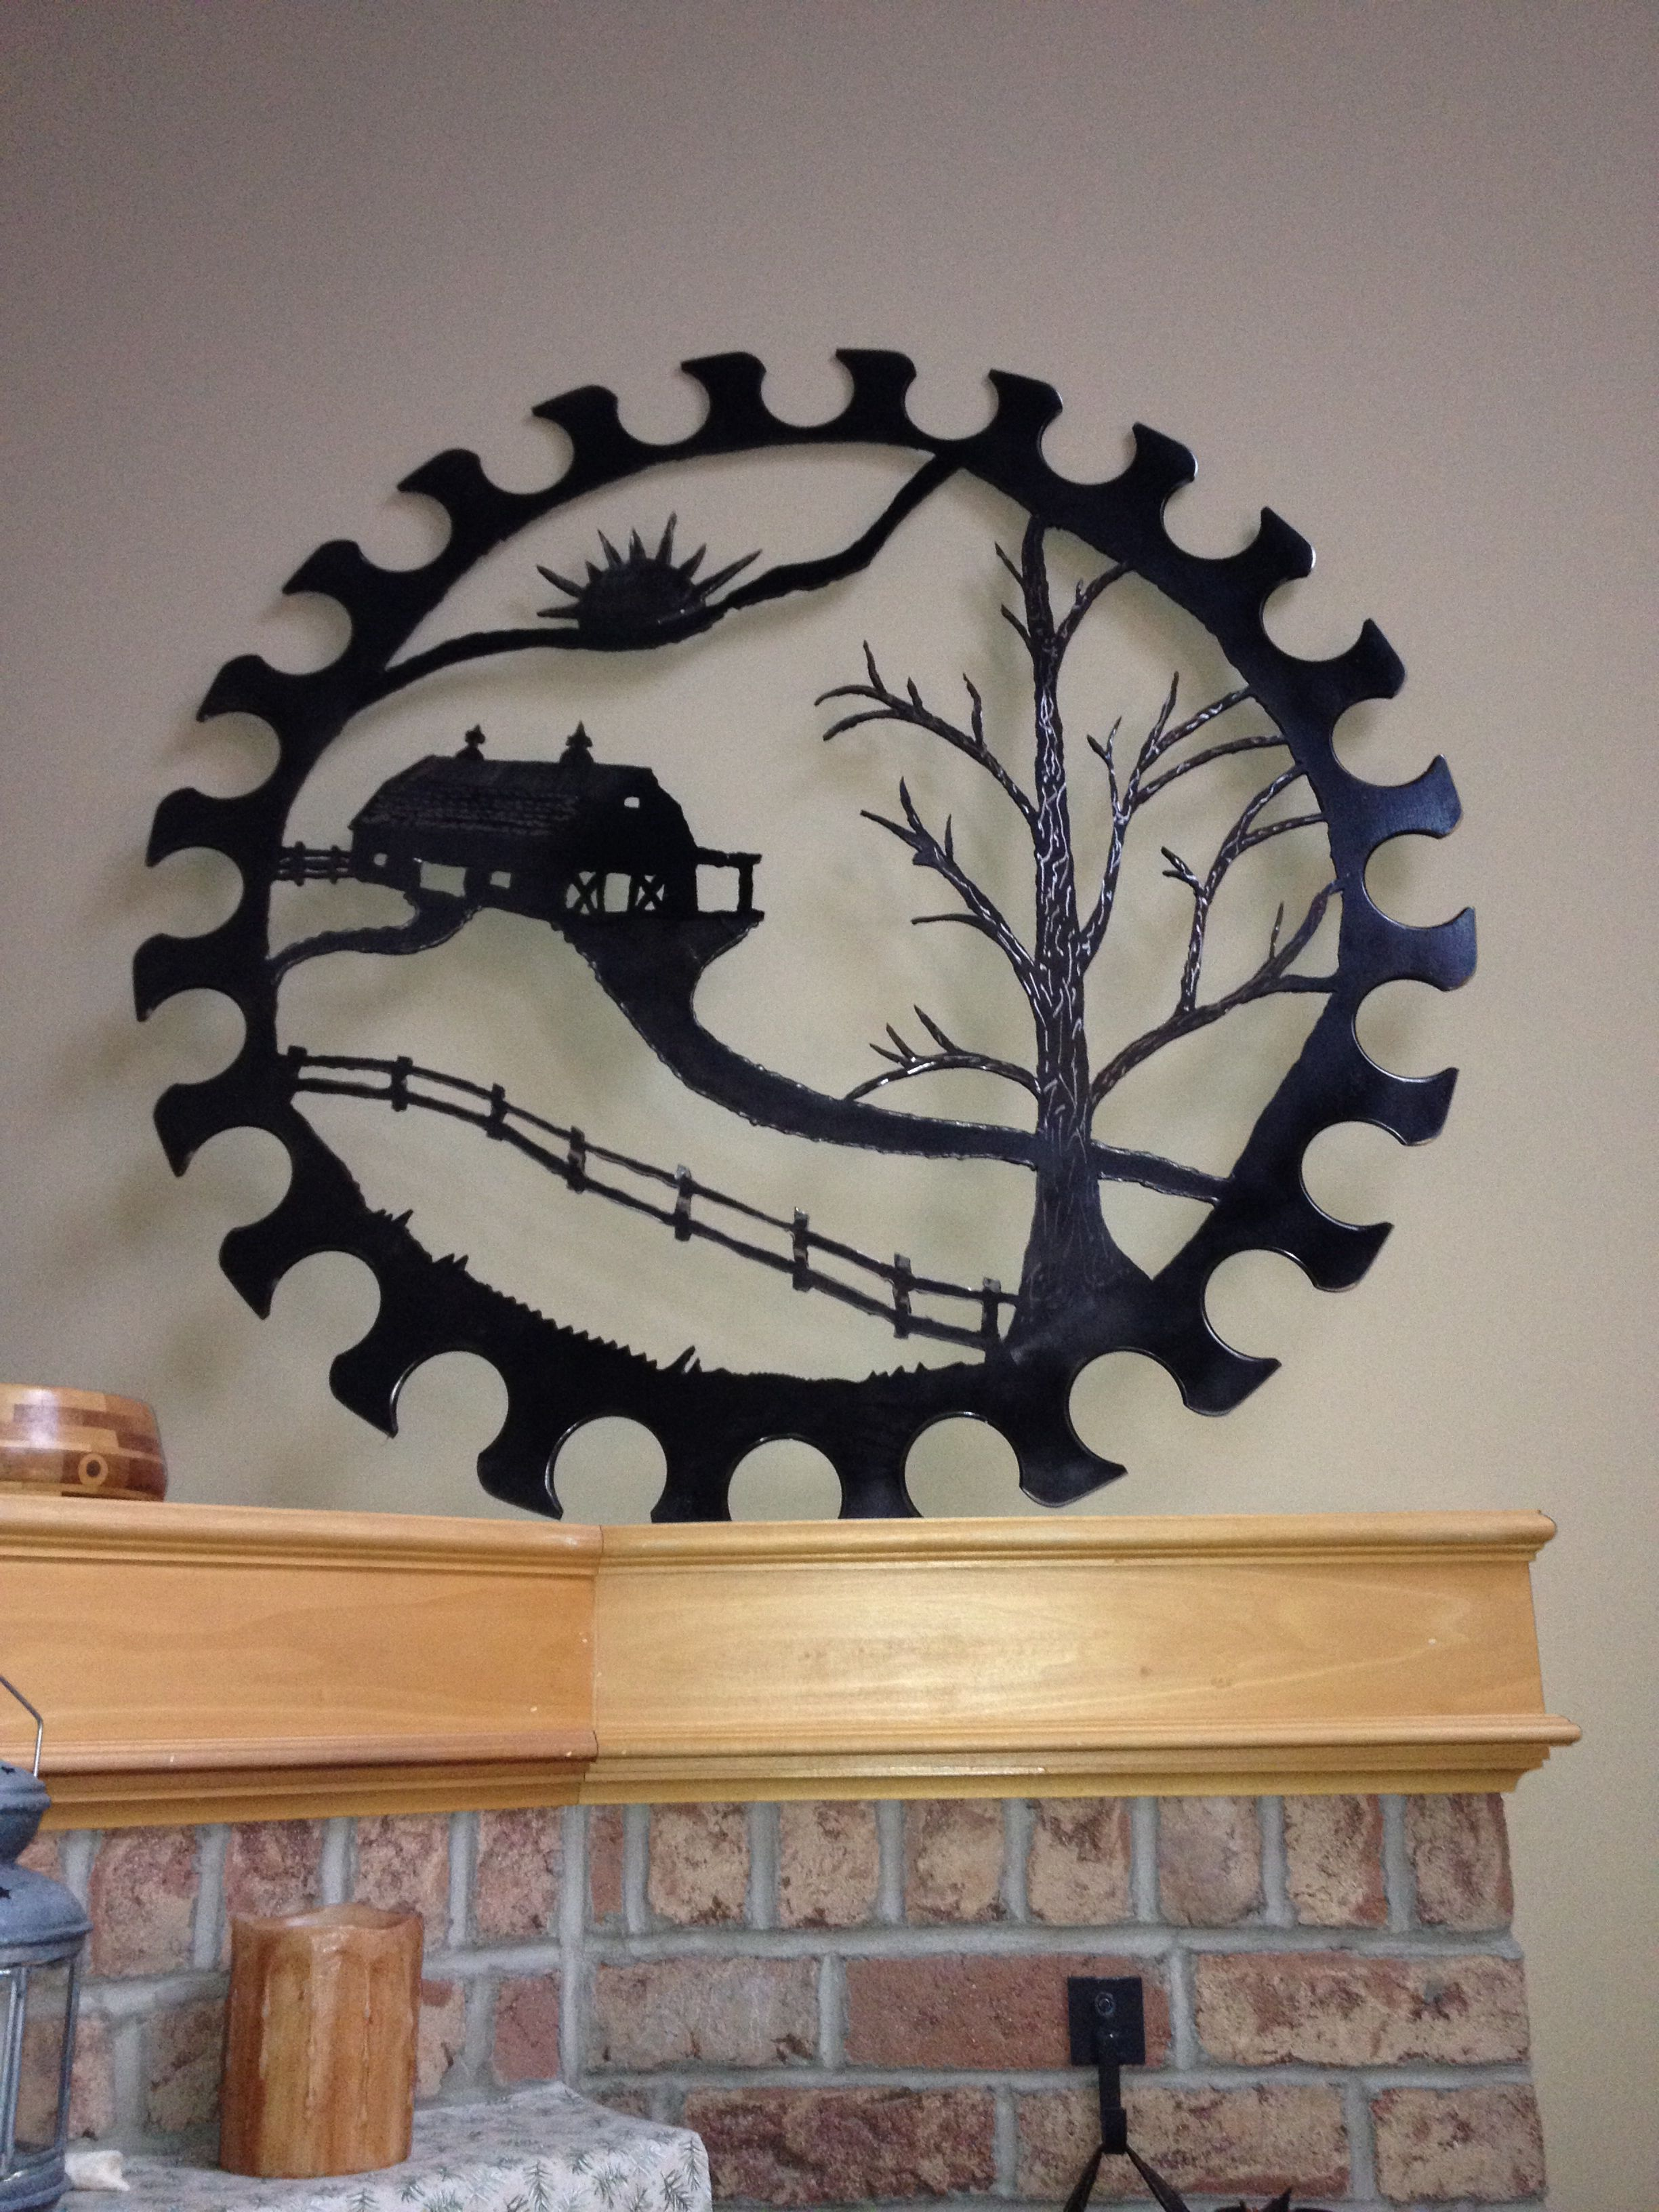 36 inch saw blade art | Welding and yard art | Pinterest | Blade ...